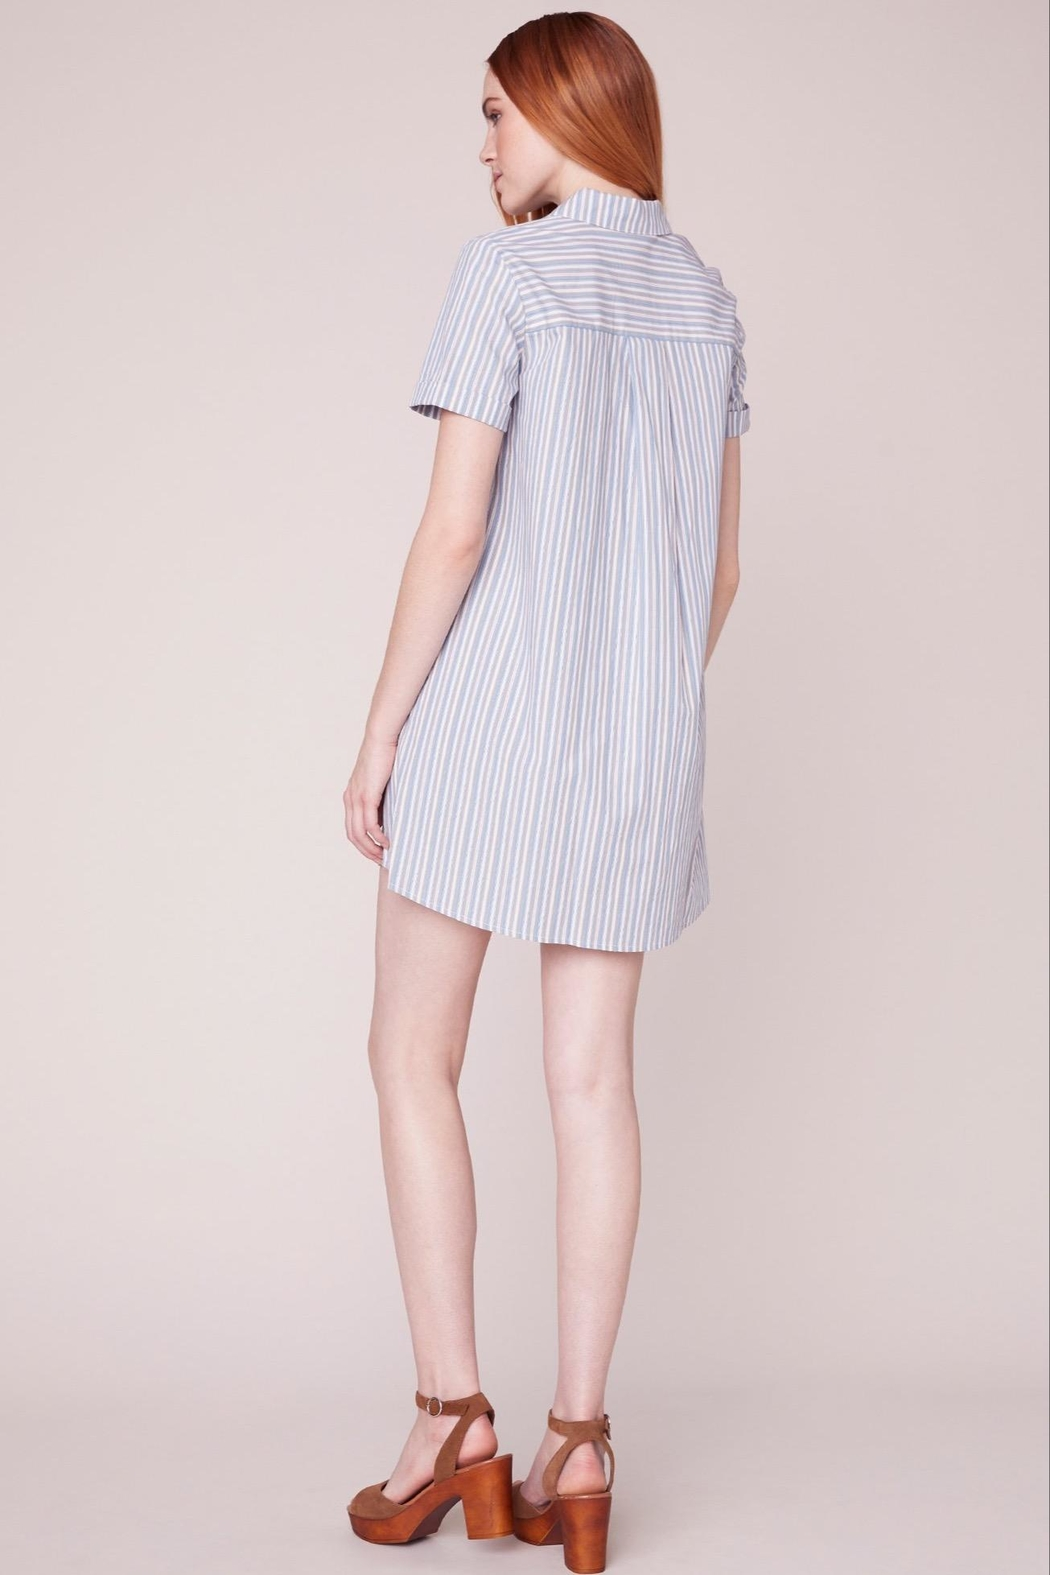 BB Dakota Striped Shirt Dress - Side Cropped Image